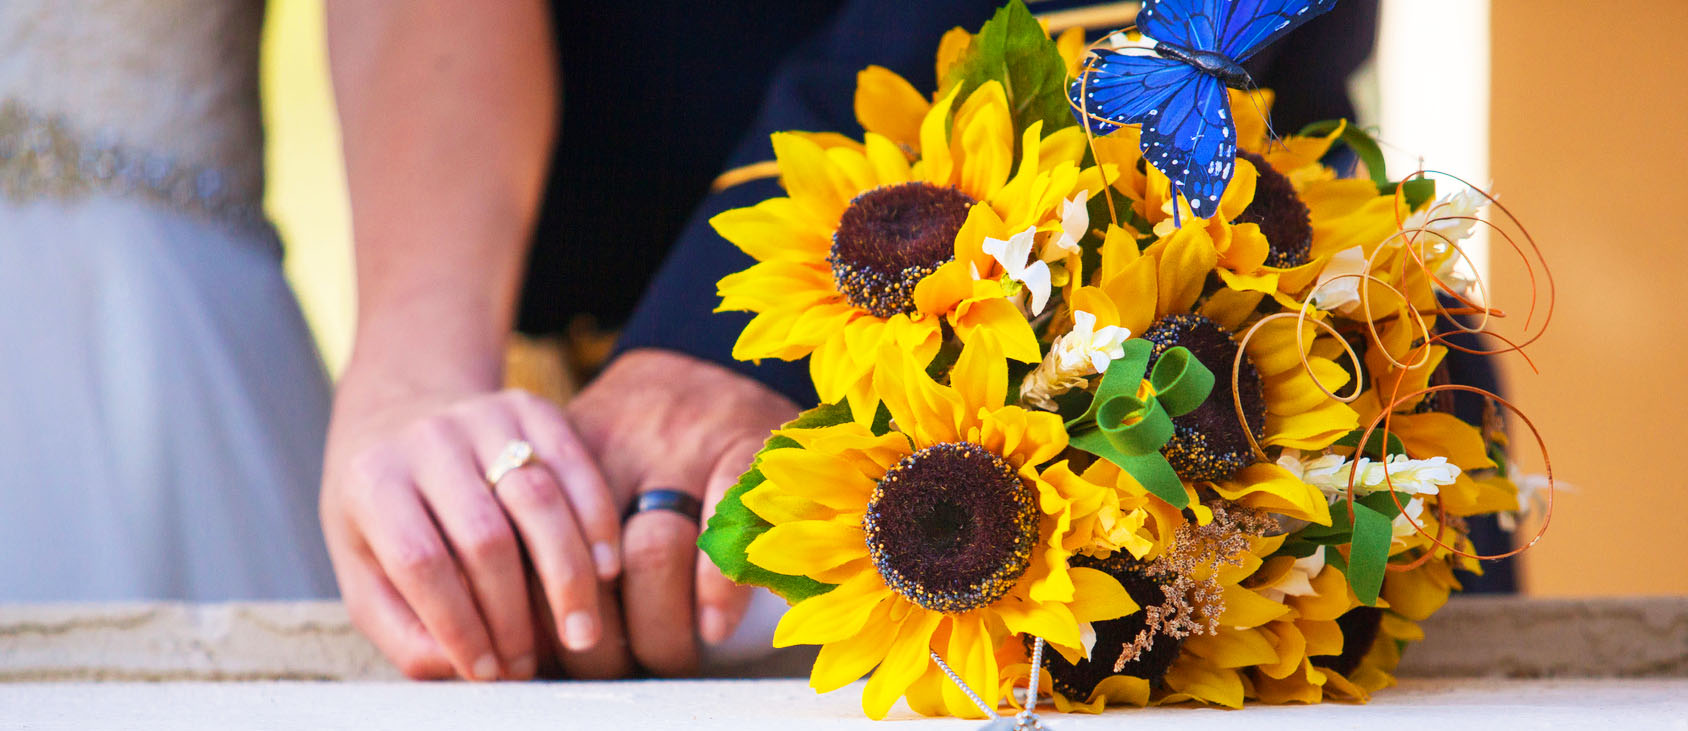 30 sunflower wedding decor ideas for you big day wedding forward sunflower wedding decor ideas featured image junglespirit Image collections